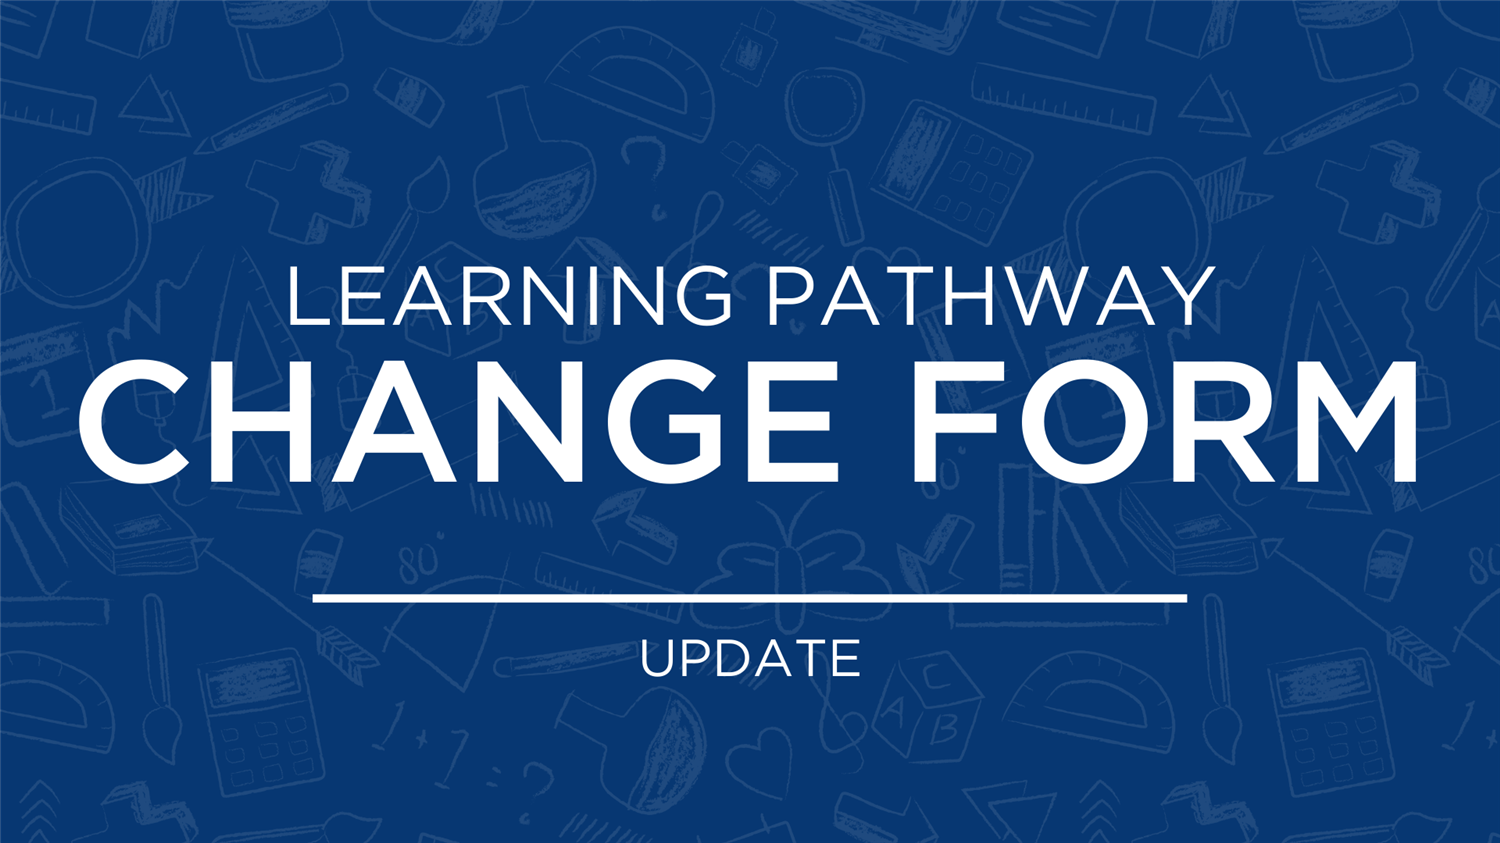 LISD Extends 4th Nine Weeks Learning Pathway Change Form Deadline